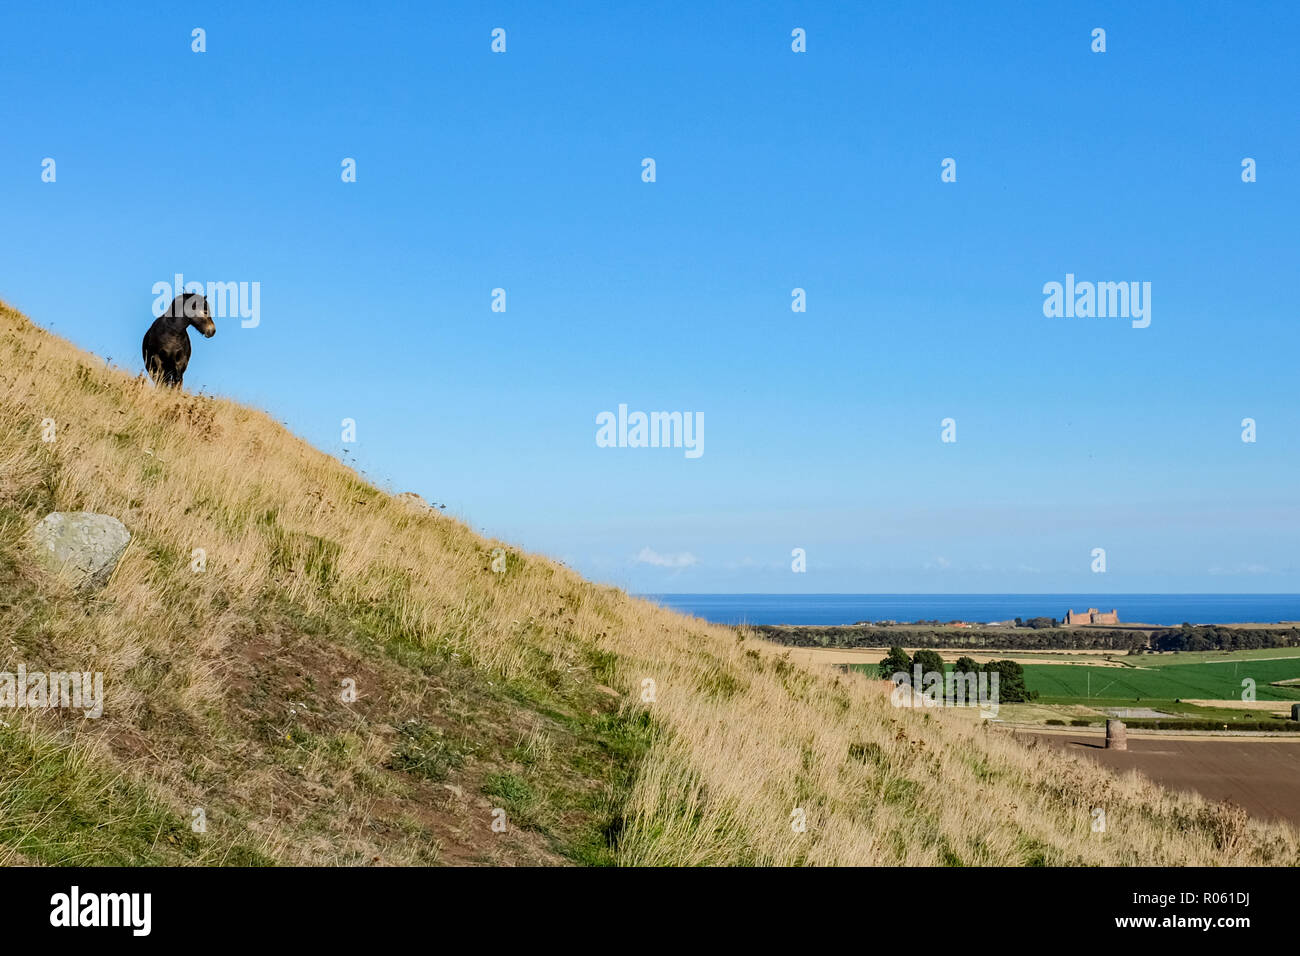 Scottish pony, on side of North Berwick Law, crag and tail hill, views to Tantallon Castle and Firth of Forth, North Berwick, Scotland, UK Stock Photo